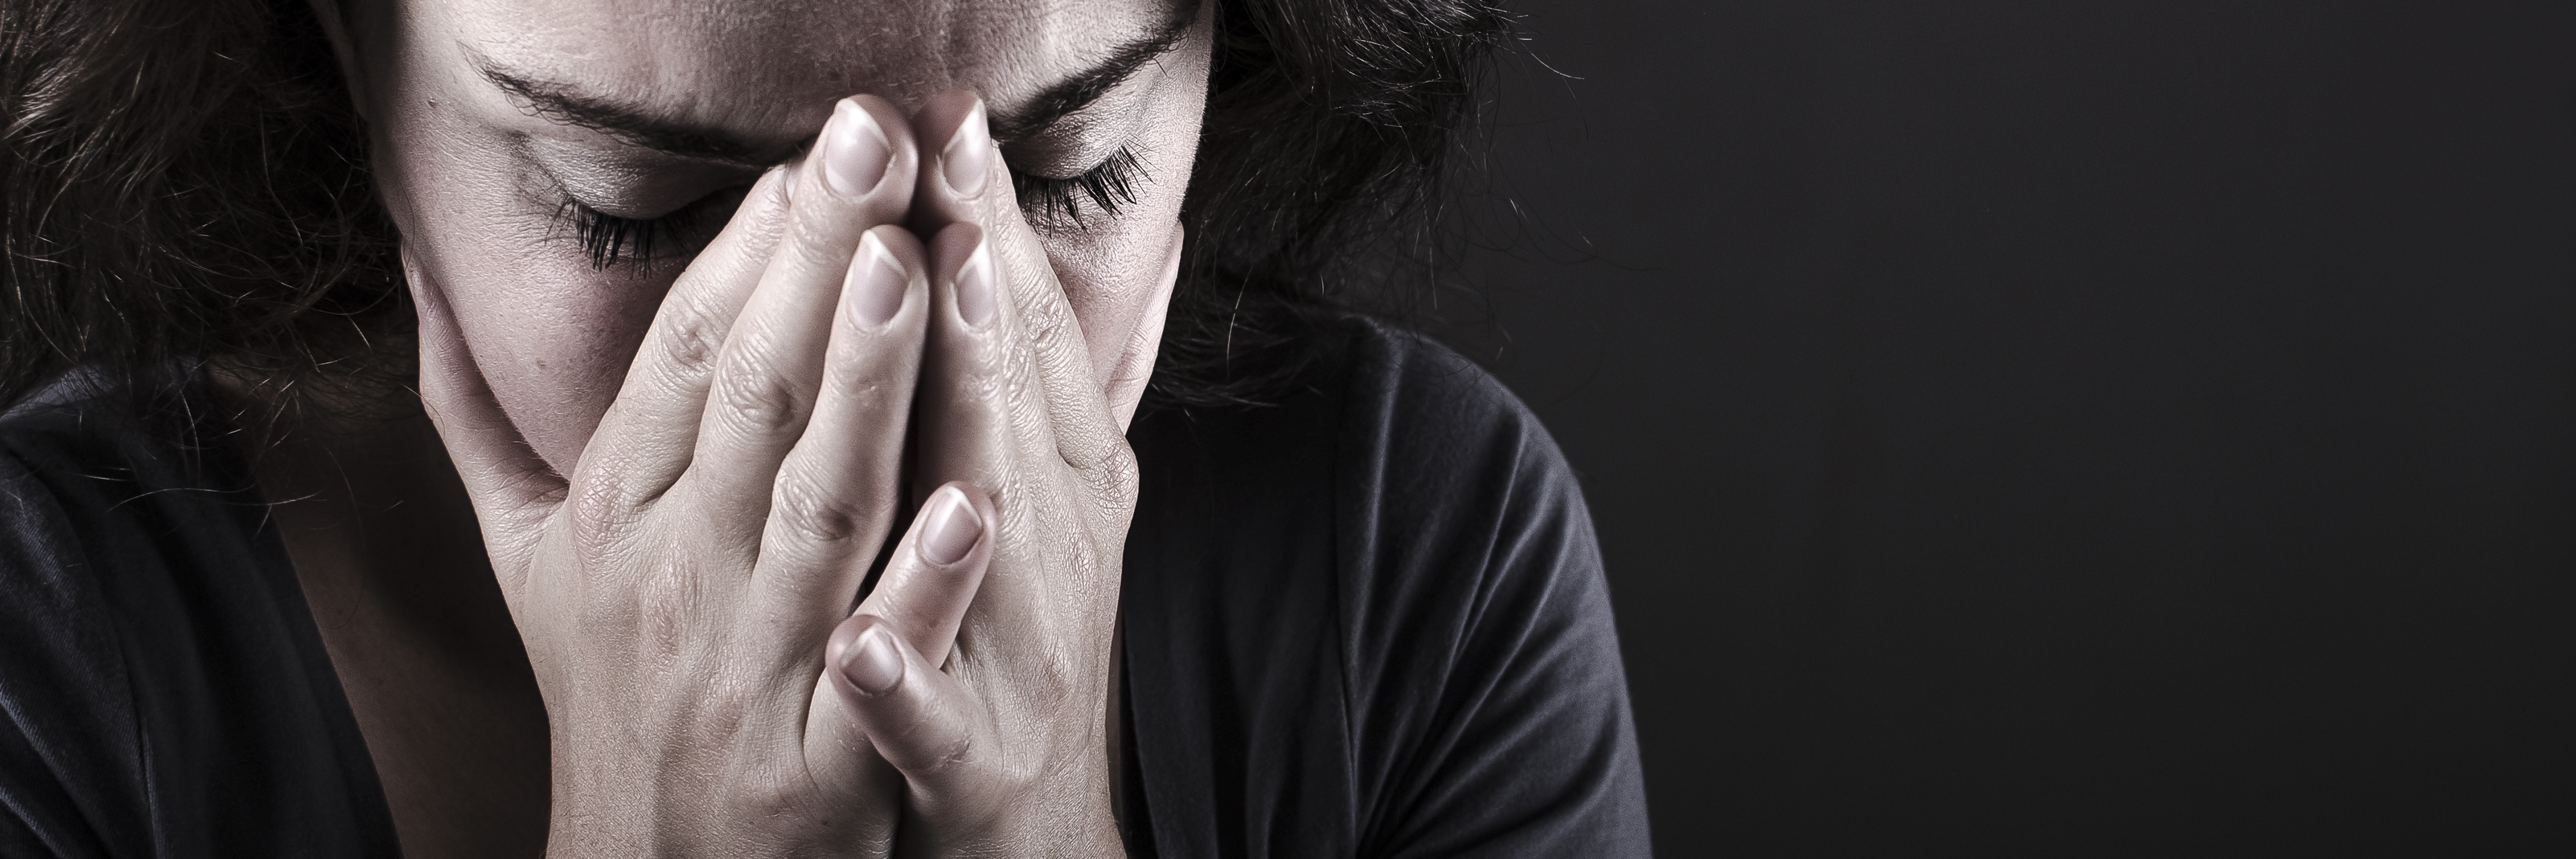 woman on dark background looking scared or depressed with hands covering face